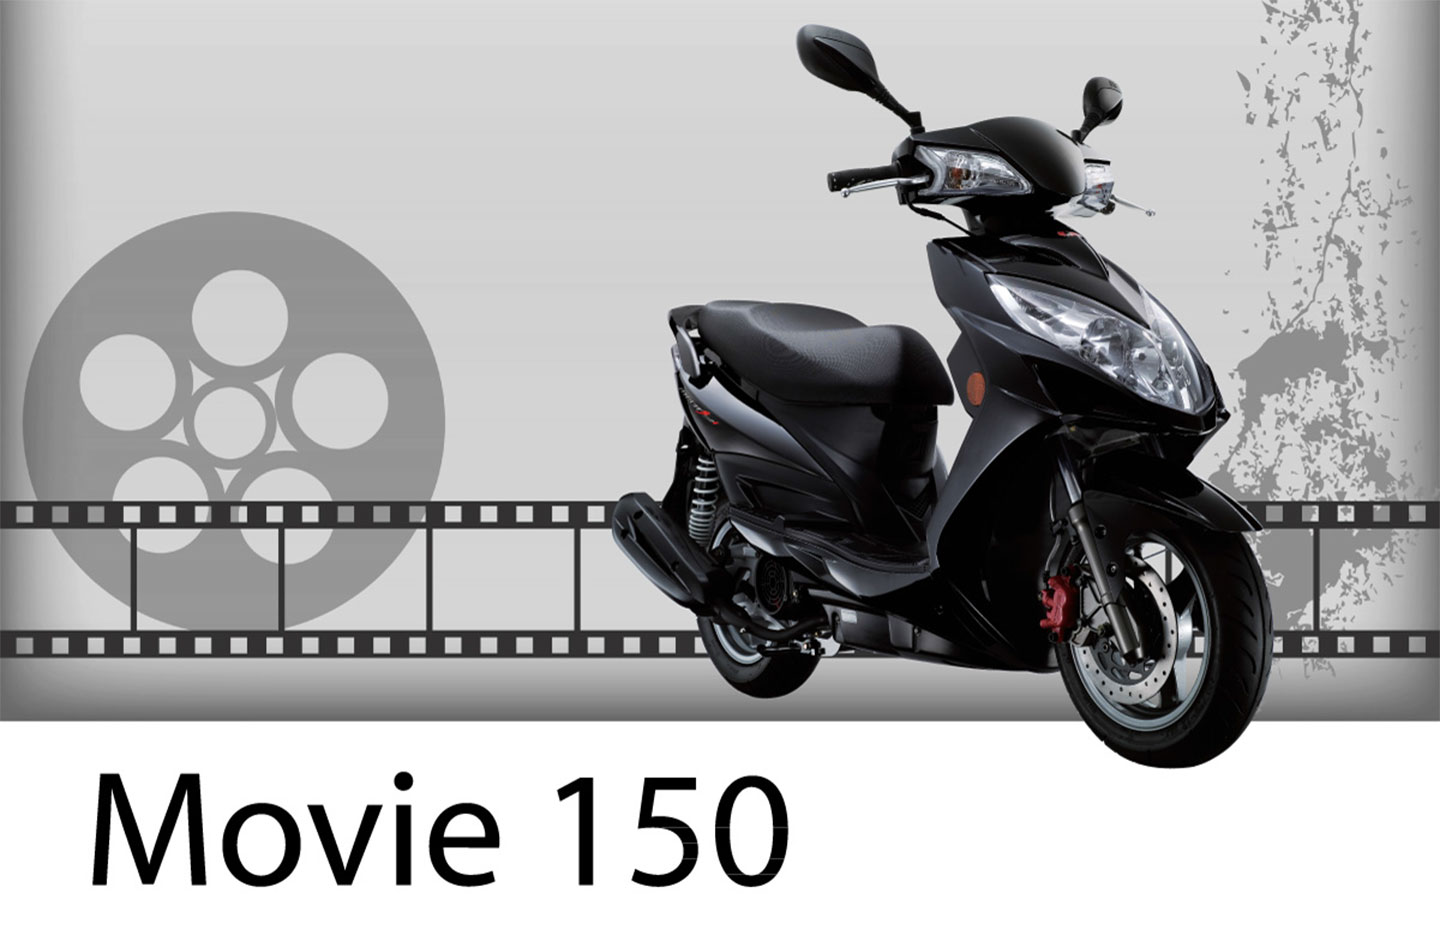 2013 Kymco Movie 150 (New for 2013)